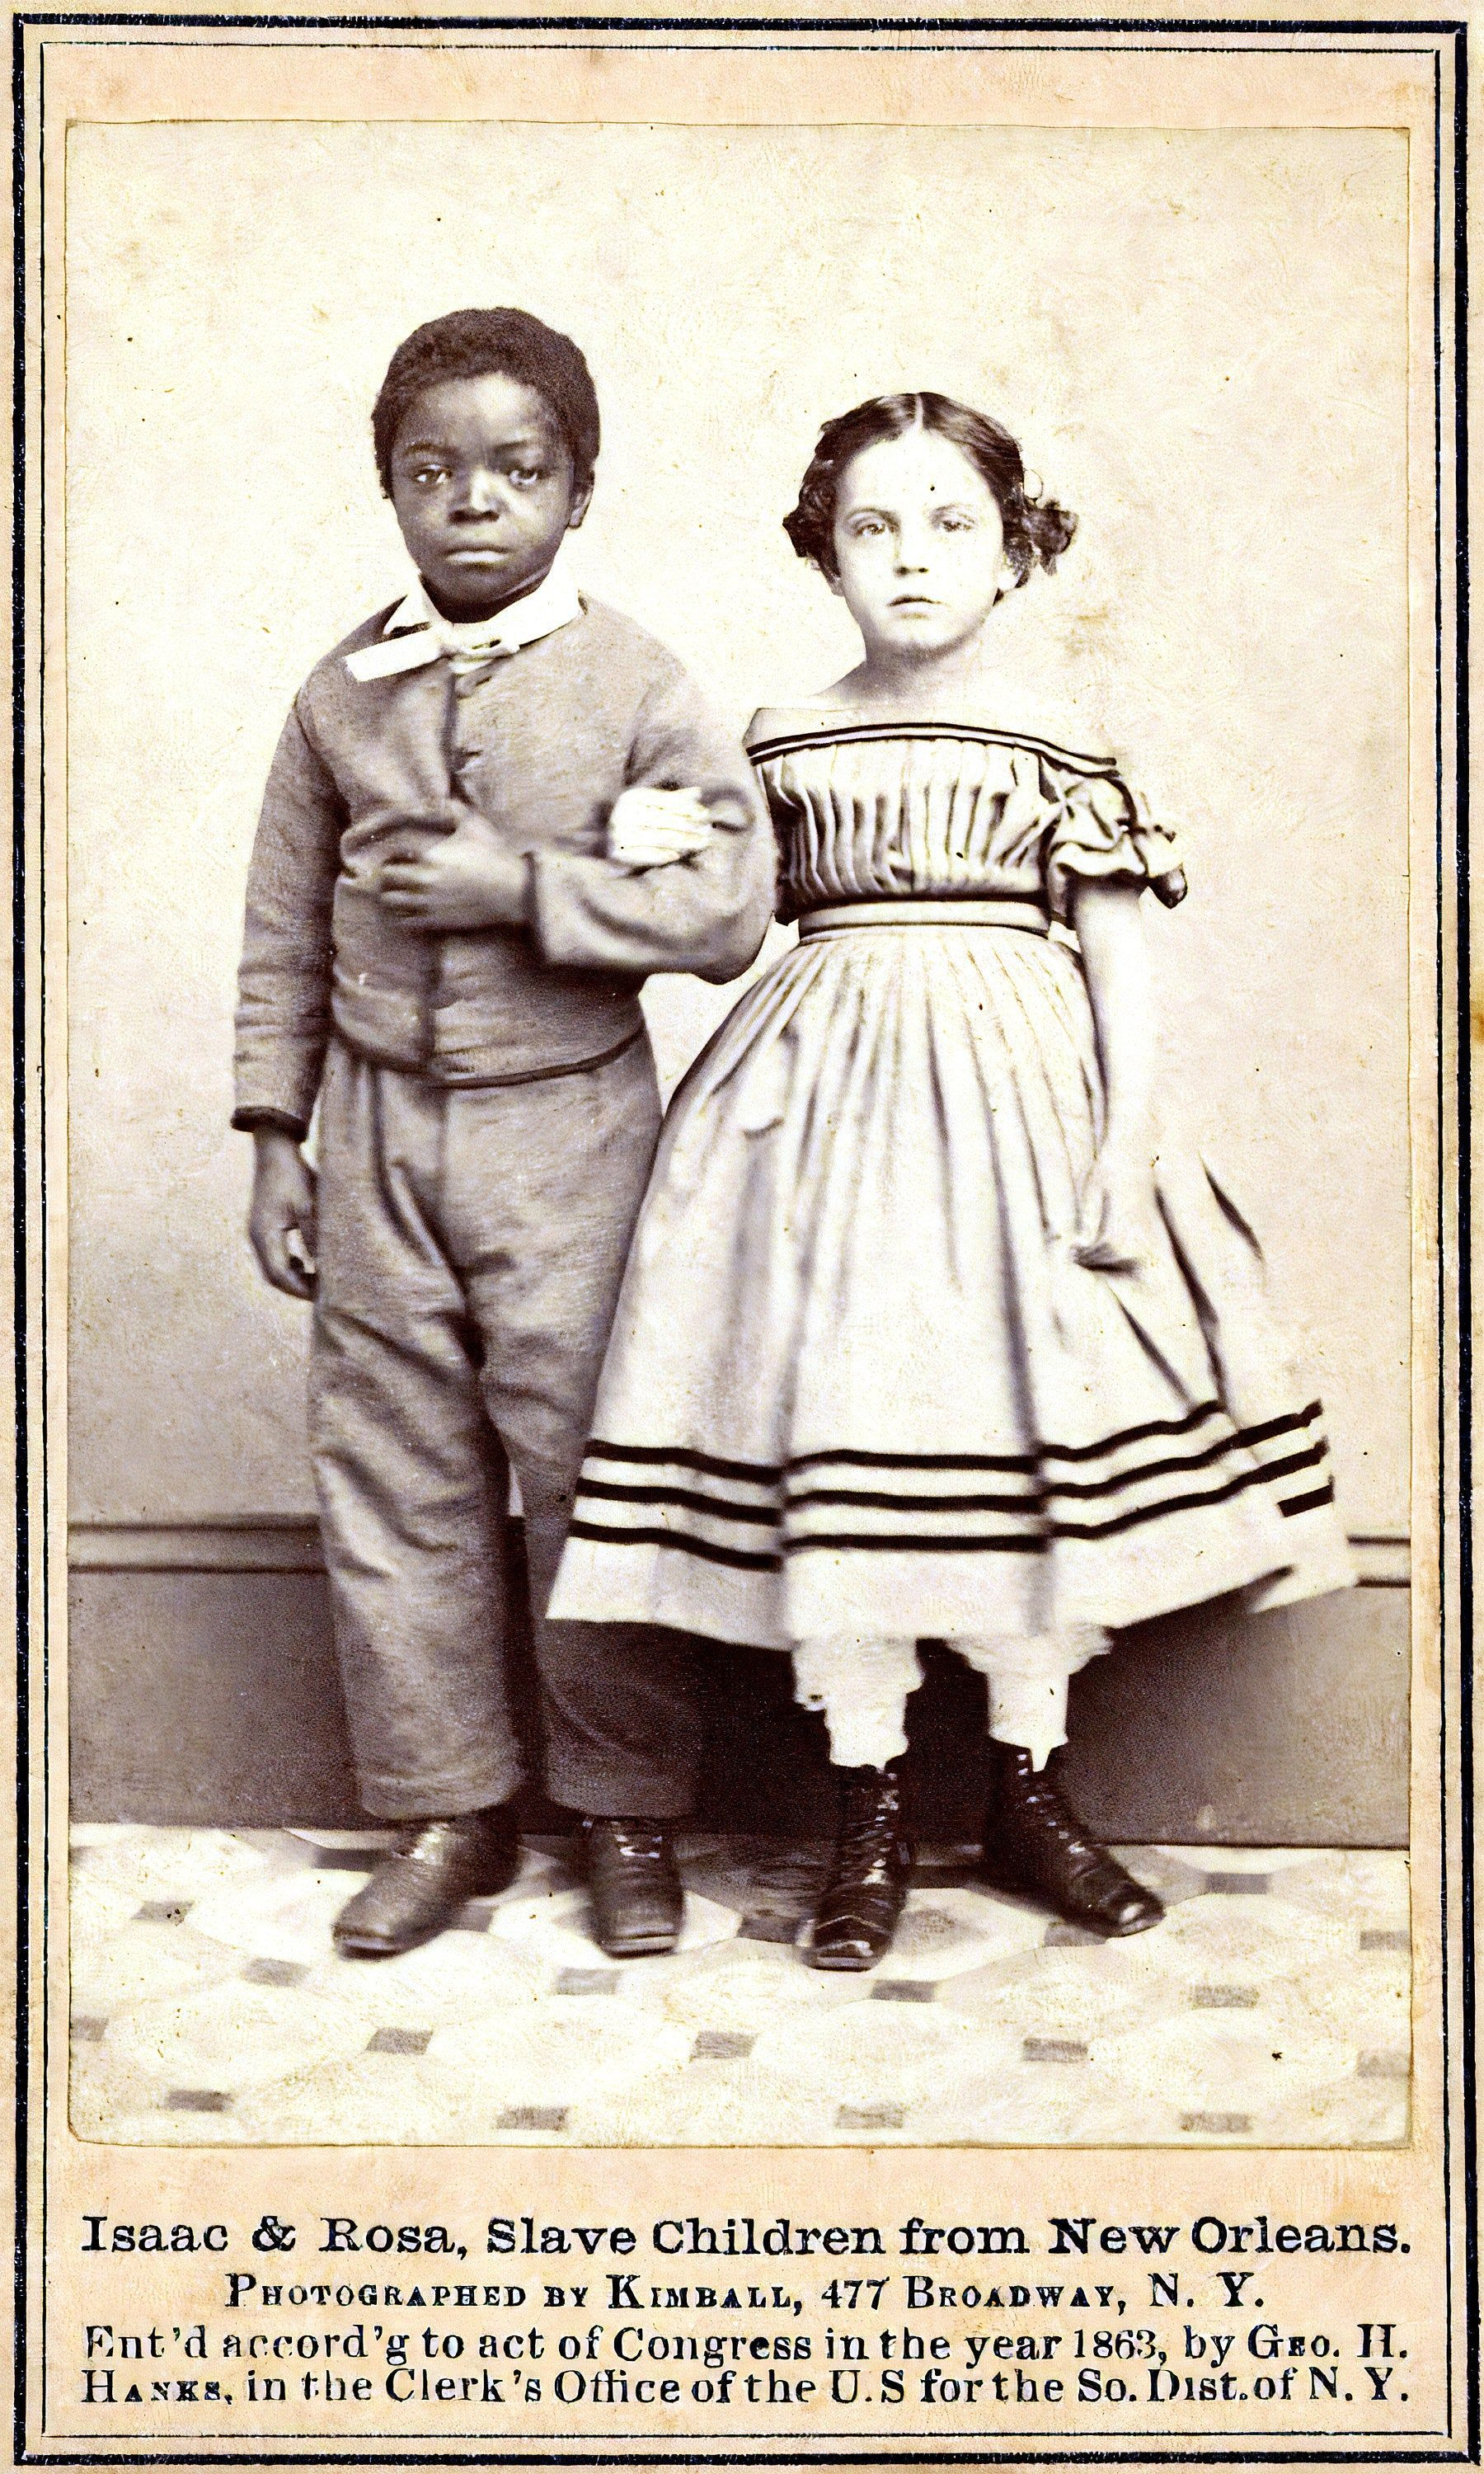 EMANCIPATED SLAVE CHILDREN from Louisiana, Instant Digital Download Art Print in 4 Sizes, 1863 Photo Reproduction, Isaac & Rosa